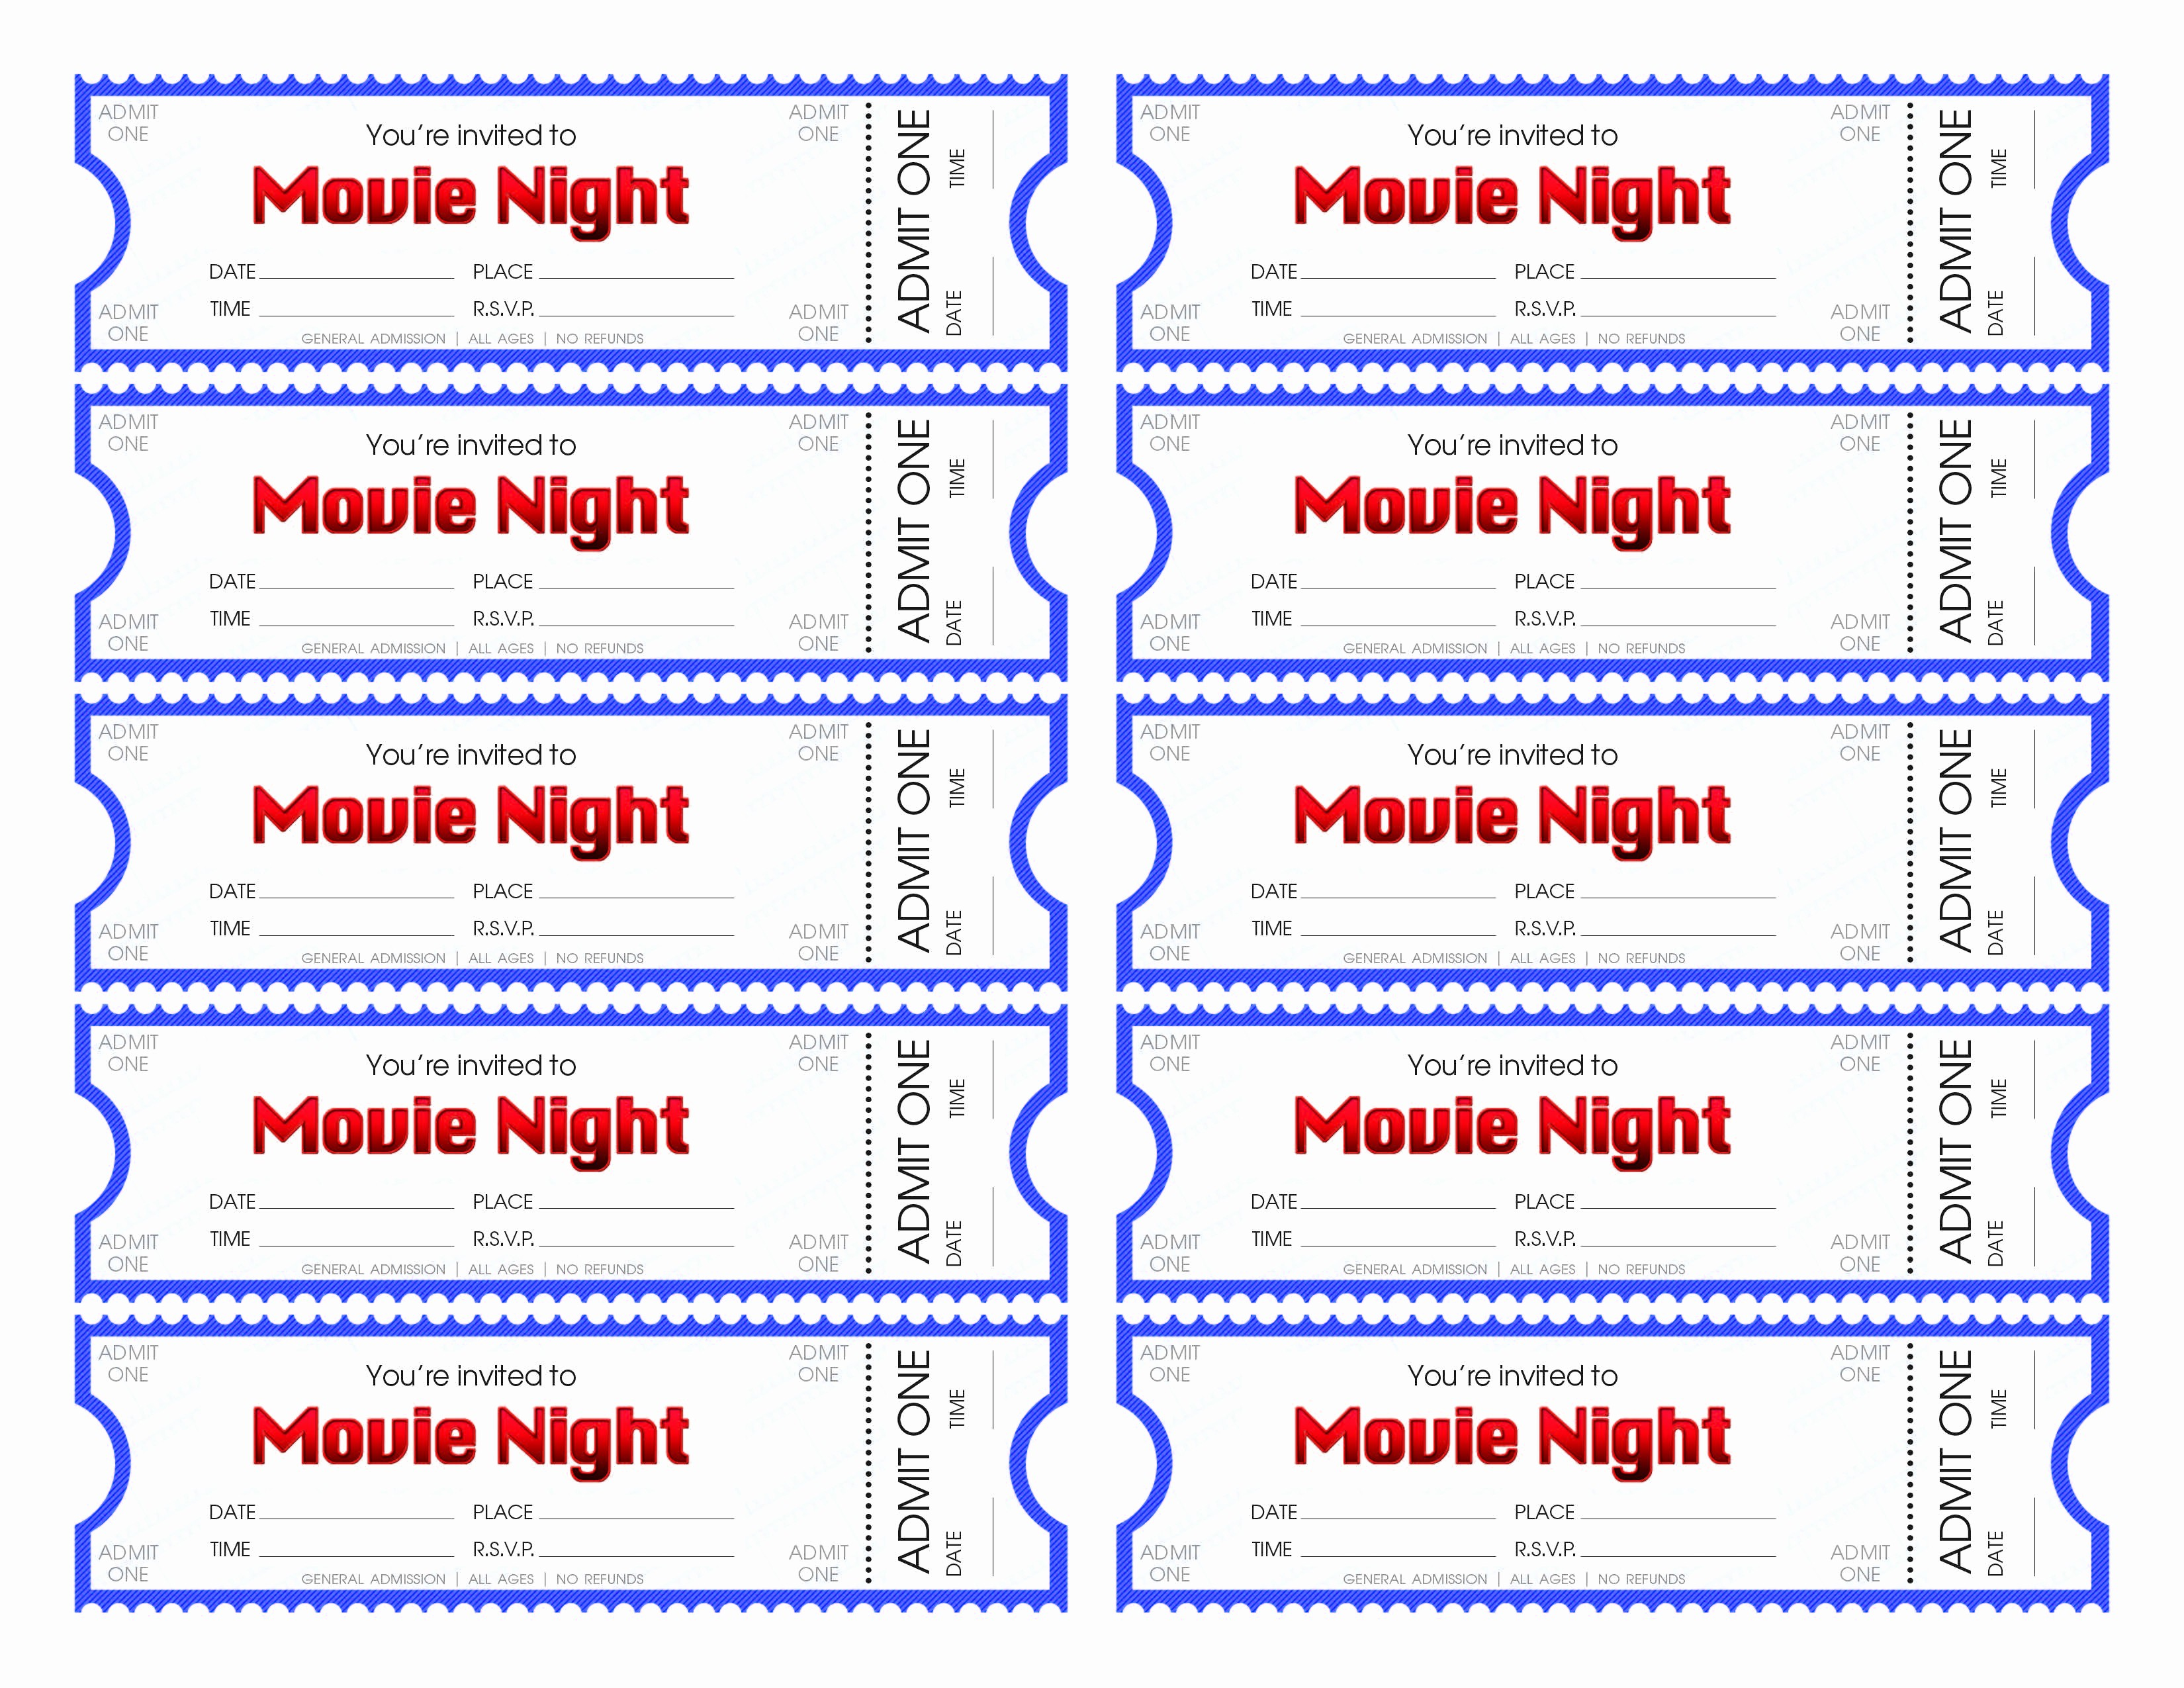 Create Your Own Tickets Template Awesome Make Your Own Movie Night Tickets